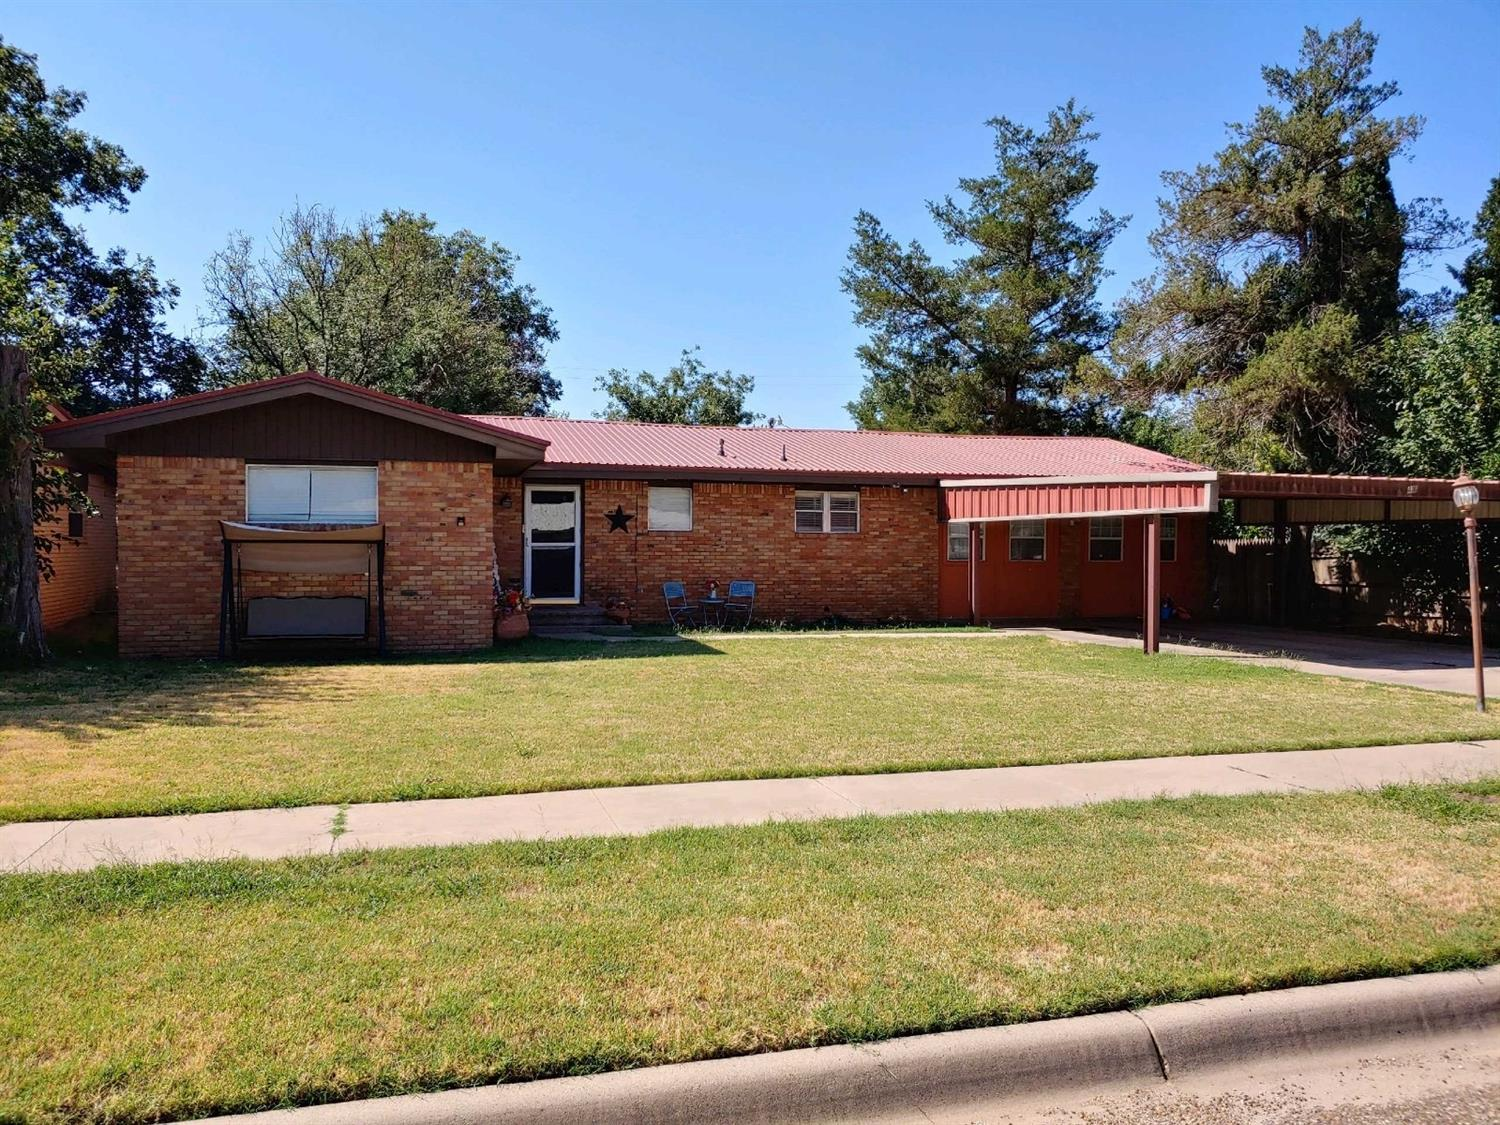 Check out this great 3/2 house in Littlefield with a 2 car Carport. You do not  want to miss seeing this home. Large Rooms, bathrooms remodeled, excellent storage and much more.